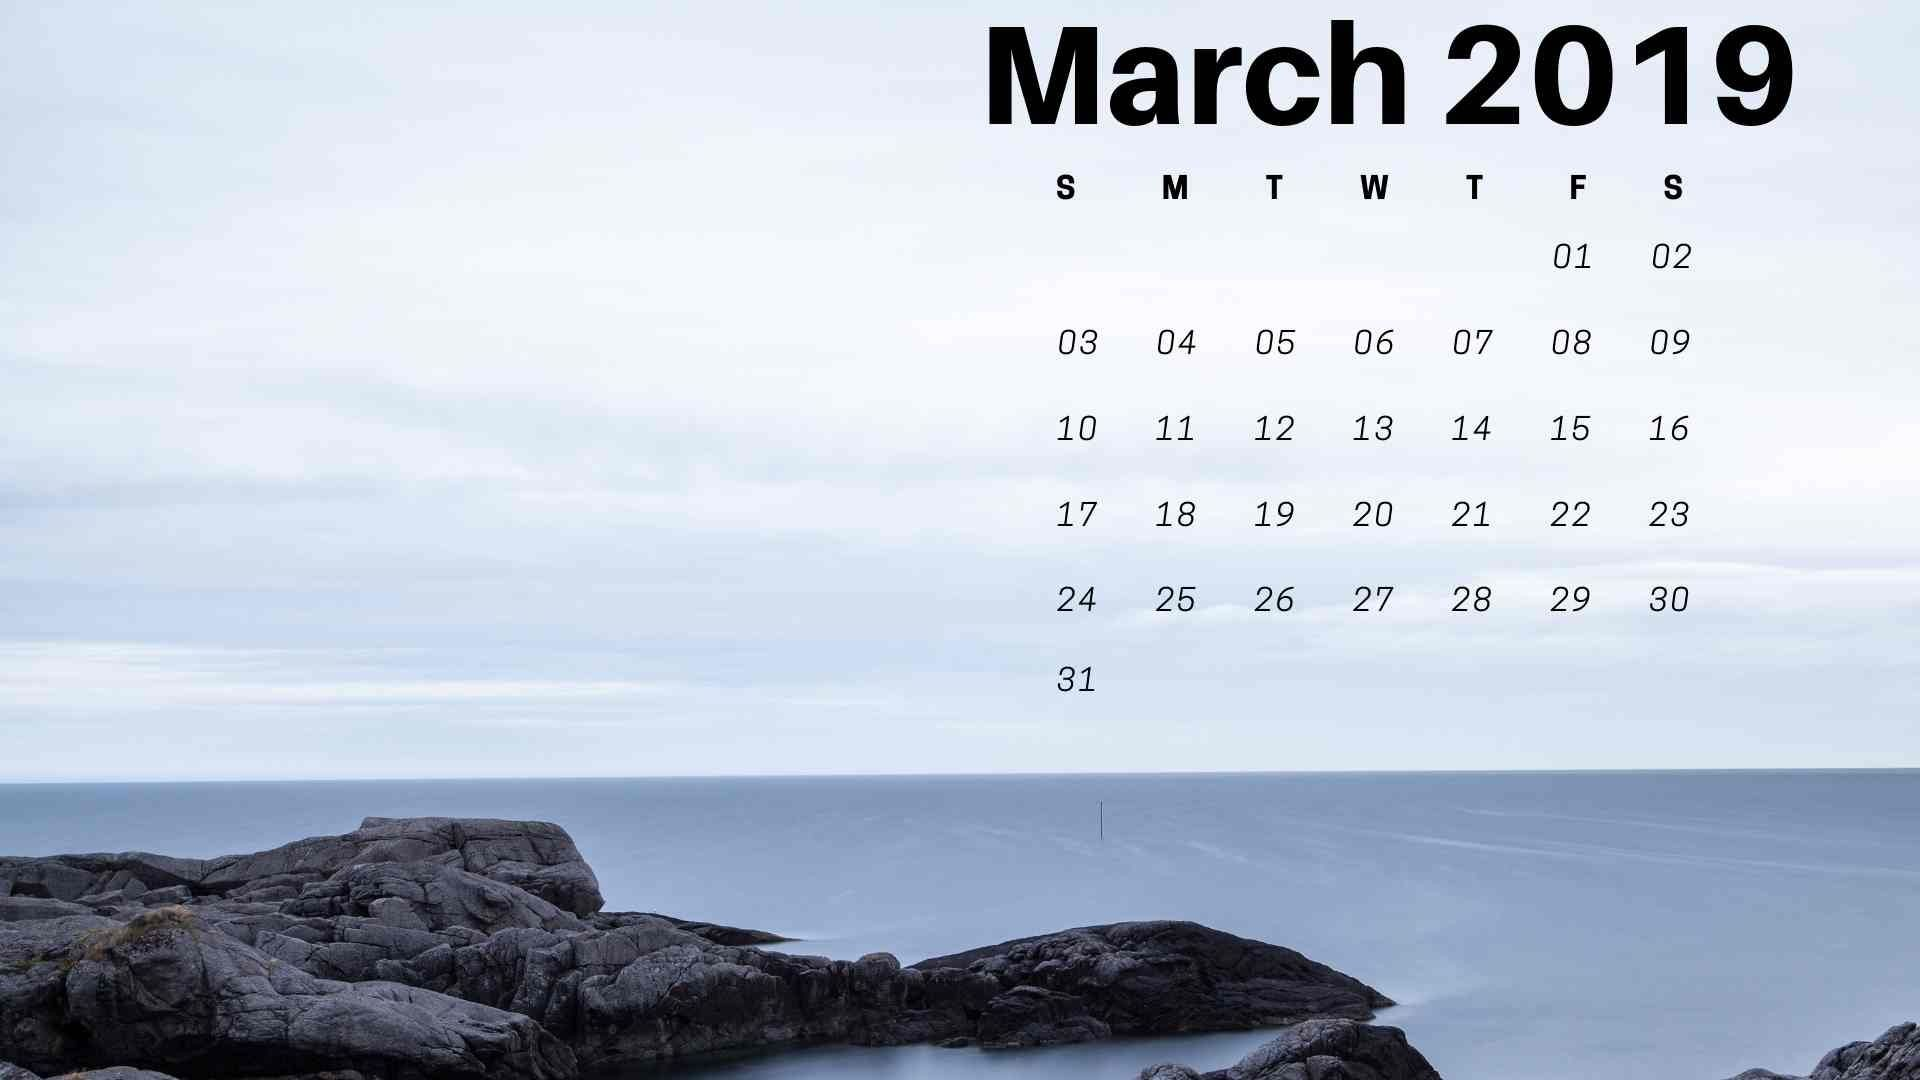 March 2019 Calendar Landscape Más Actual March 2019 Calendar Wallpaper Desktop March Calendar Calenda2019 Of March 2019 Calendar Landscape Más Recientemente Liberado December 2019 Calendar